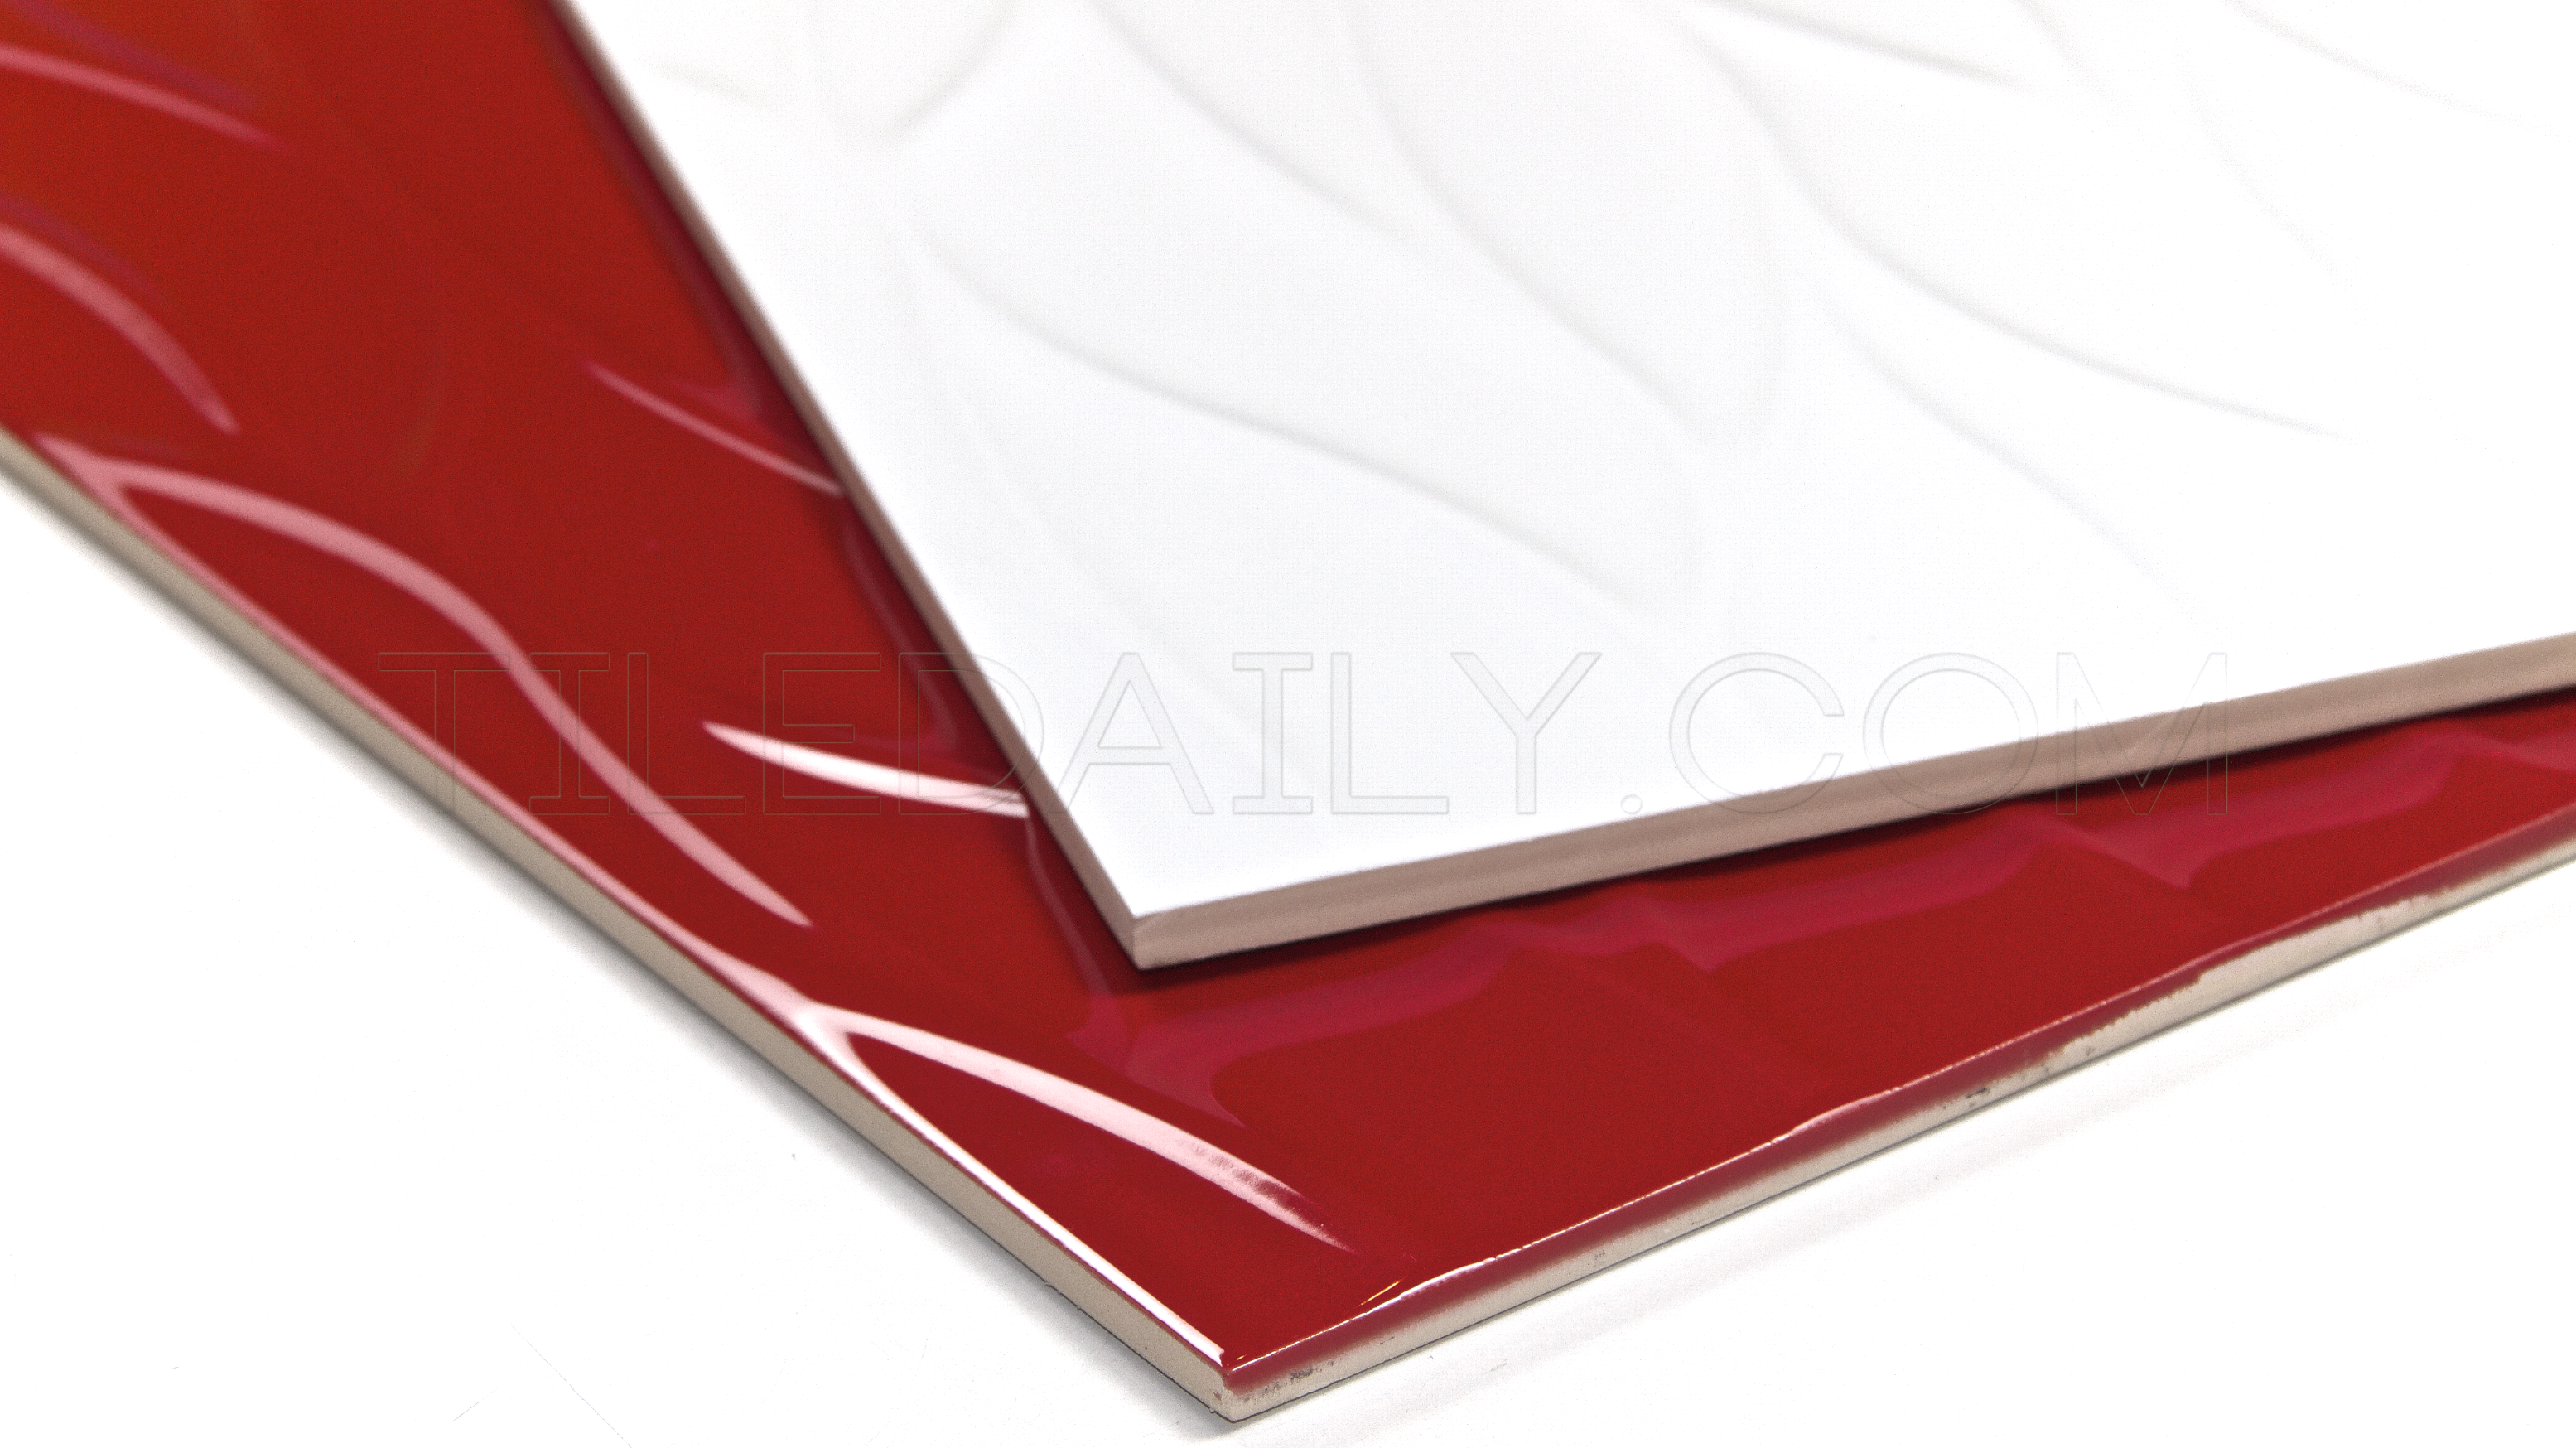 Leaf wave ceramic tile red white tiledaily 12x36 leaf wave 3d ceramic wall tile red white dailygadgetfo Choice Image